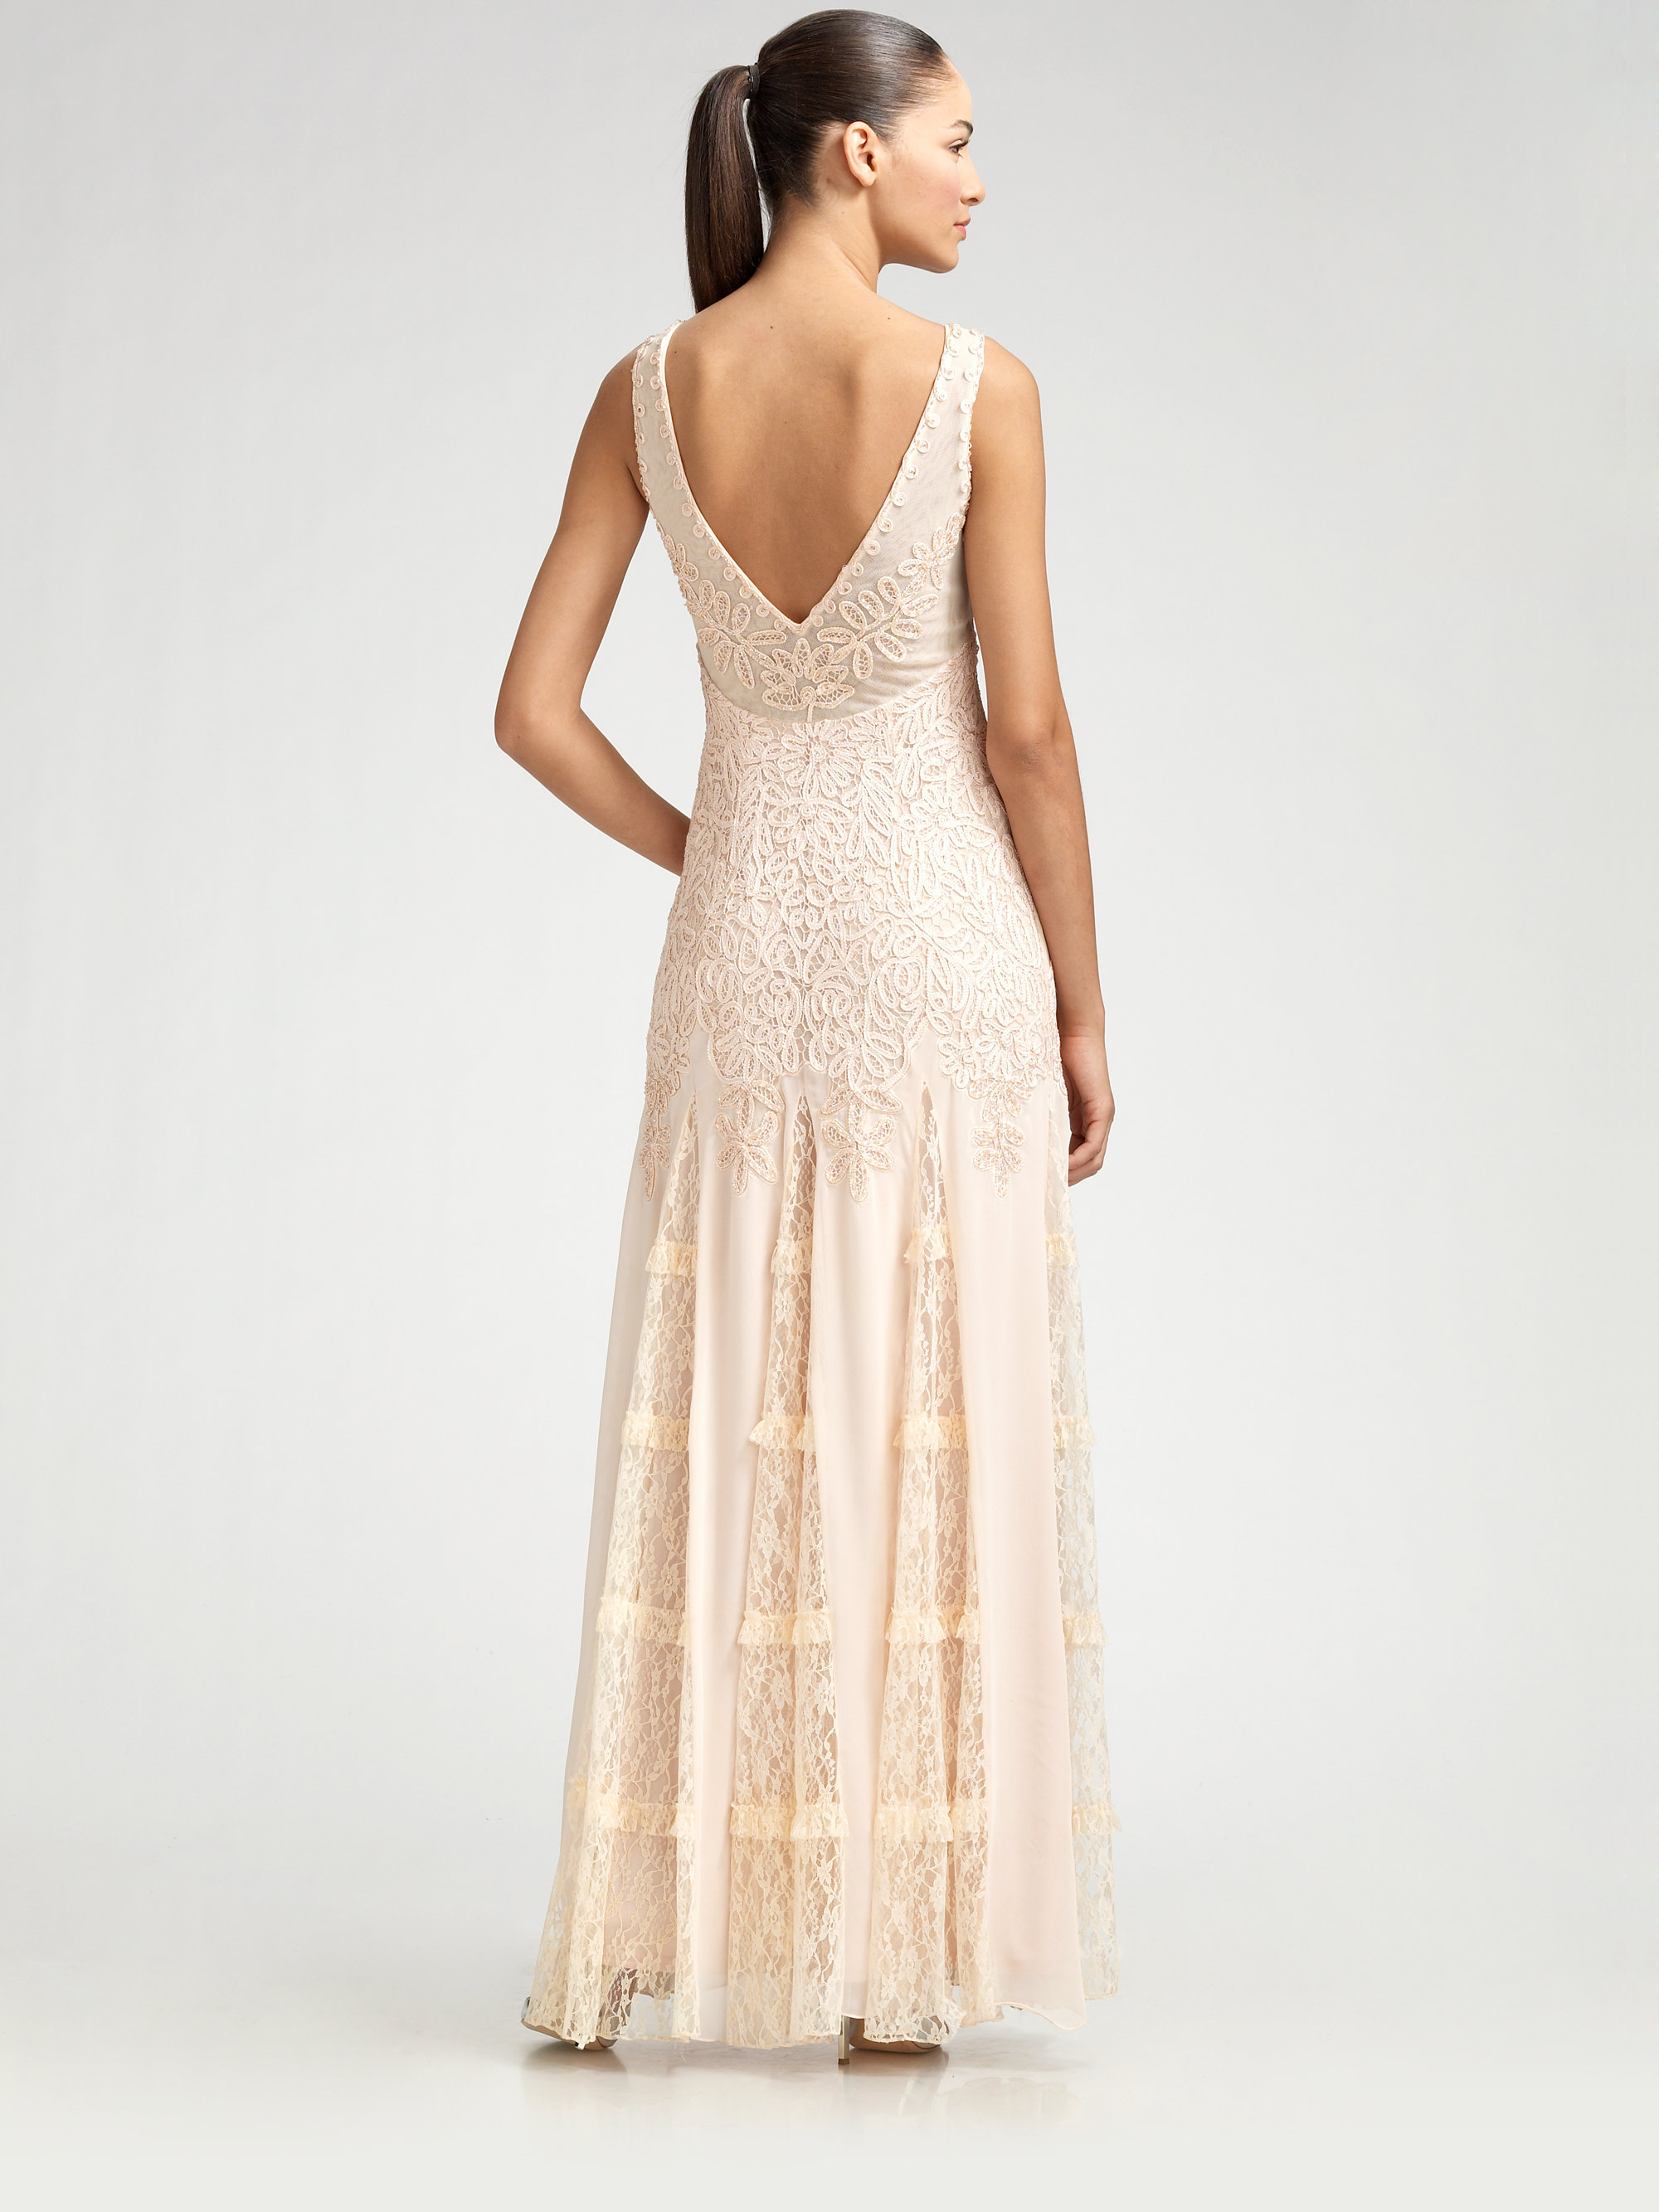 Lyst - Sue Wong Beaded Lace Gown in Natural